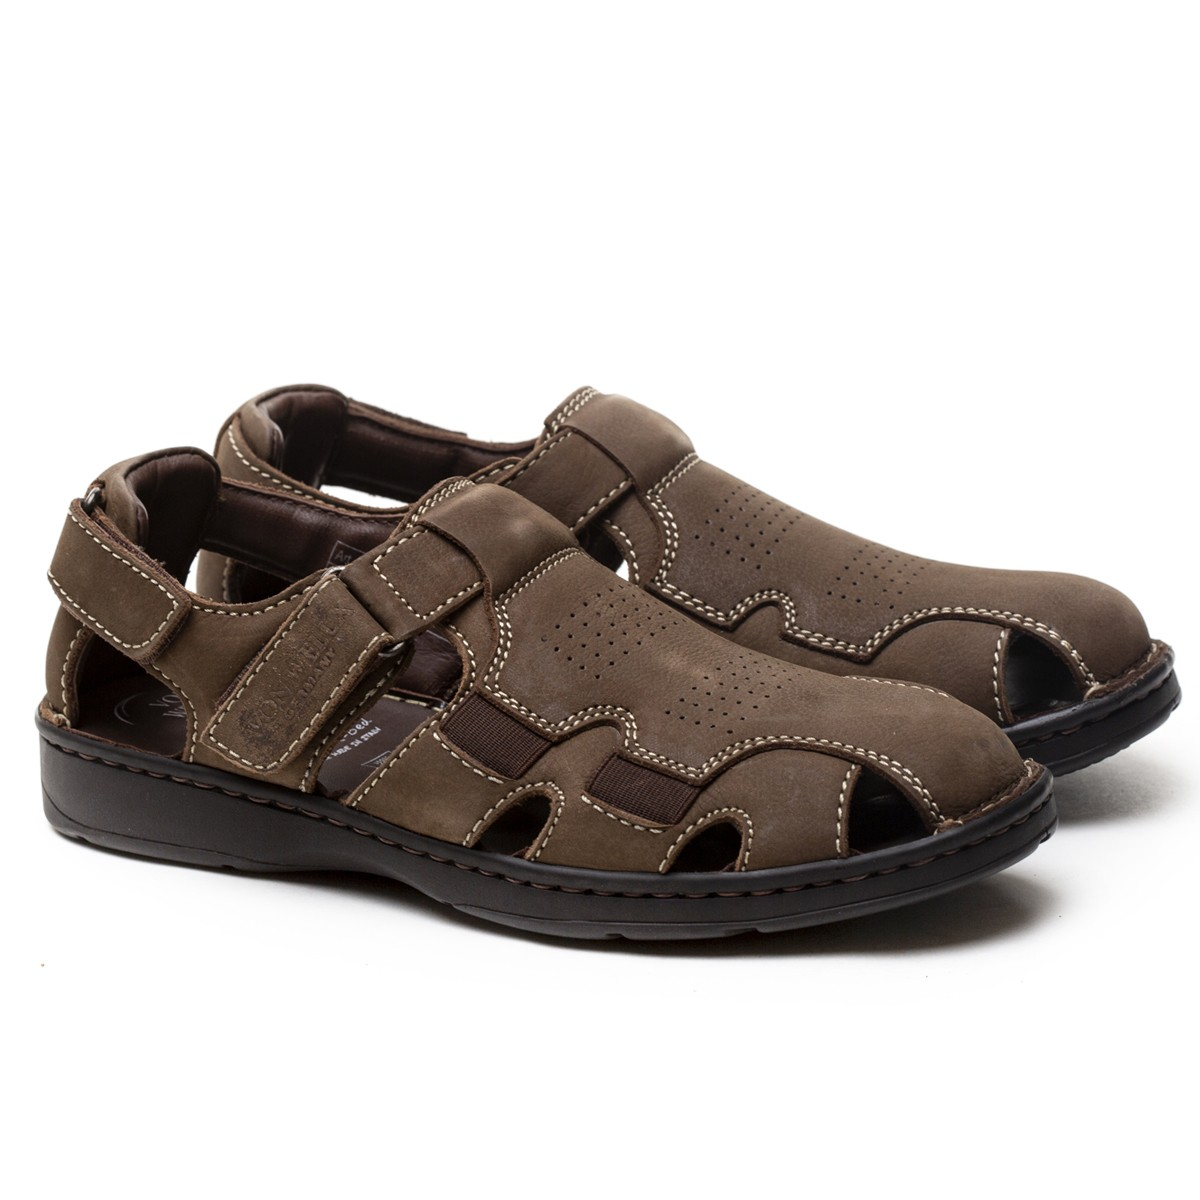 Buy Von Wellx Germany Comfort Neil Chikoo Sandals Online in Maharashtra